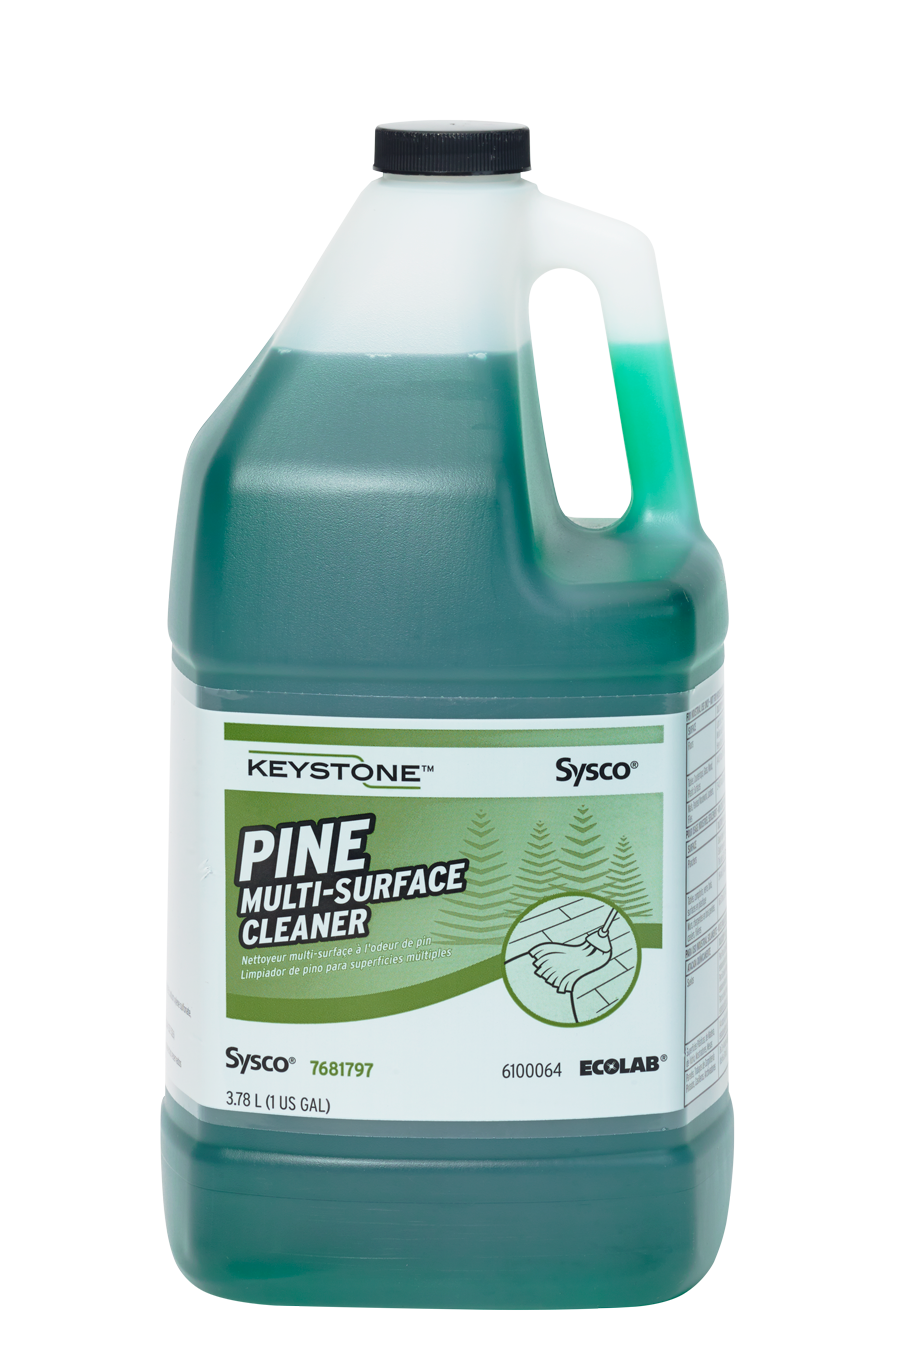 Keystone Pine Multi Surface Cleaner